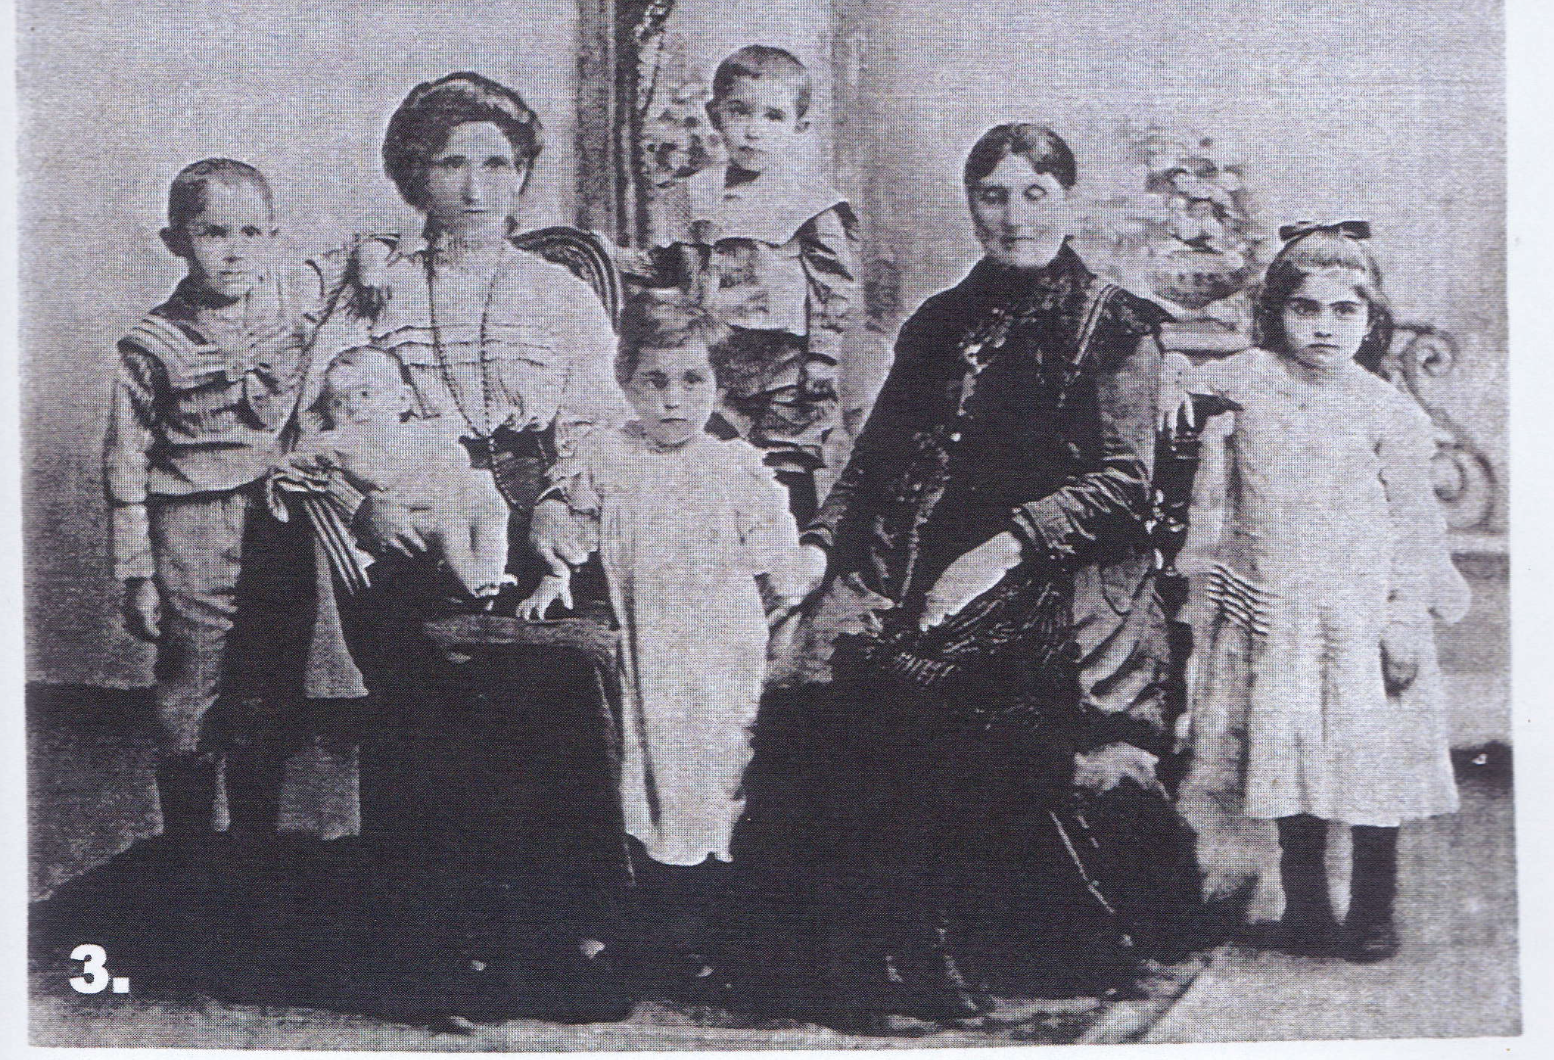 Members of my family including my great, great grandmother Raisa Bahcall.